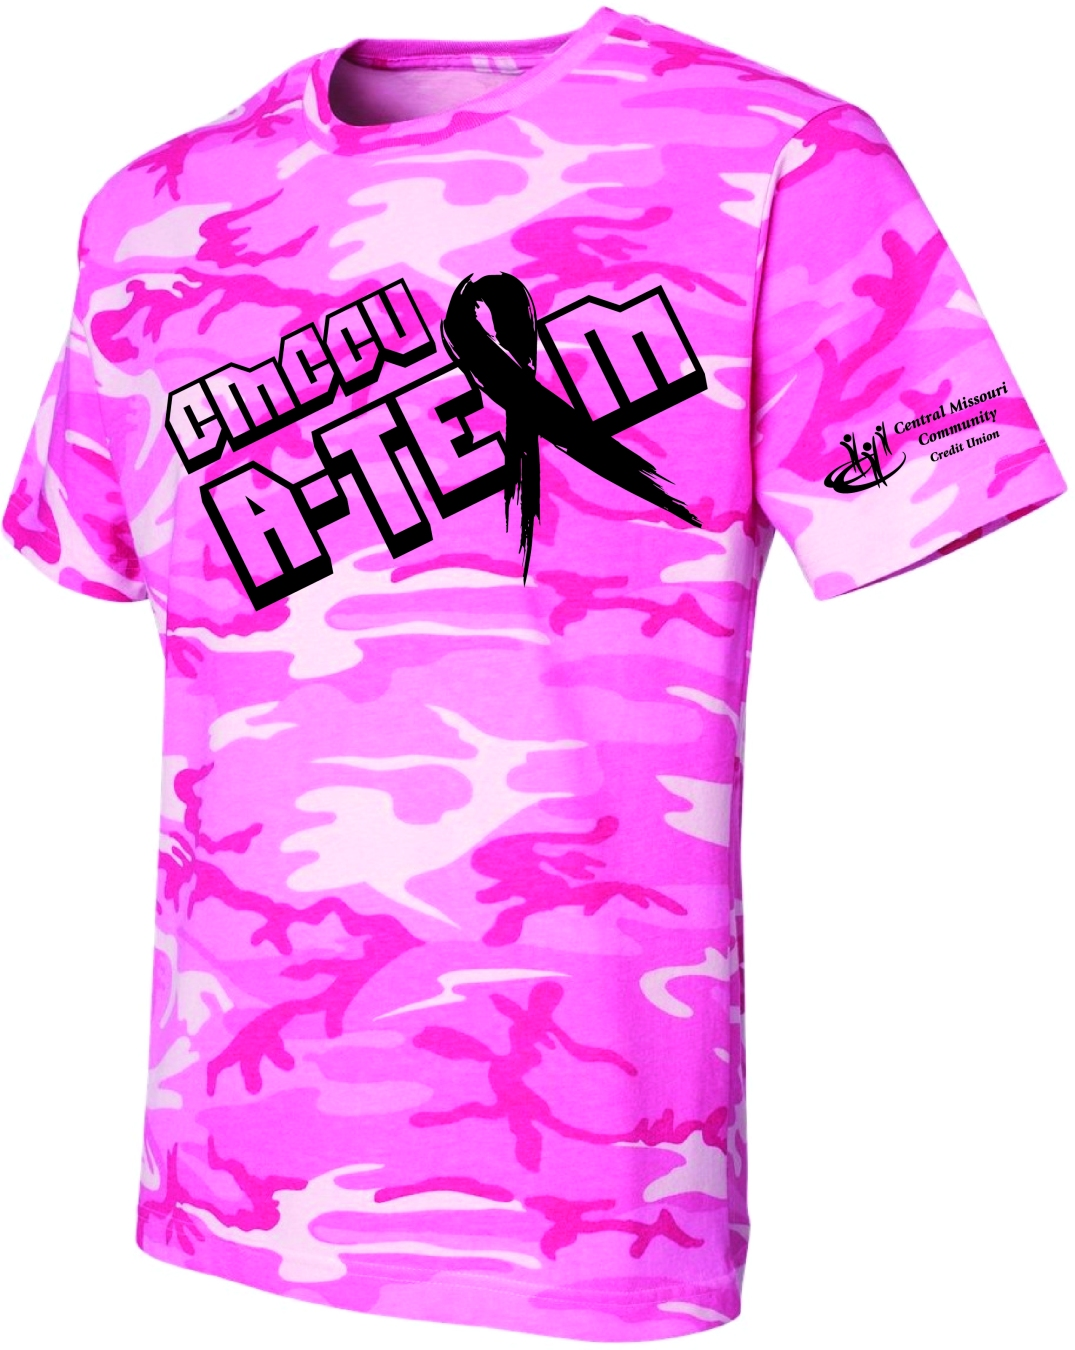 Cancer Relay T-Shirt 2015